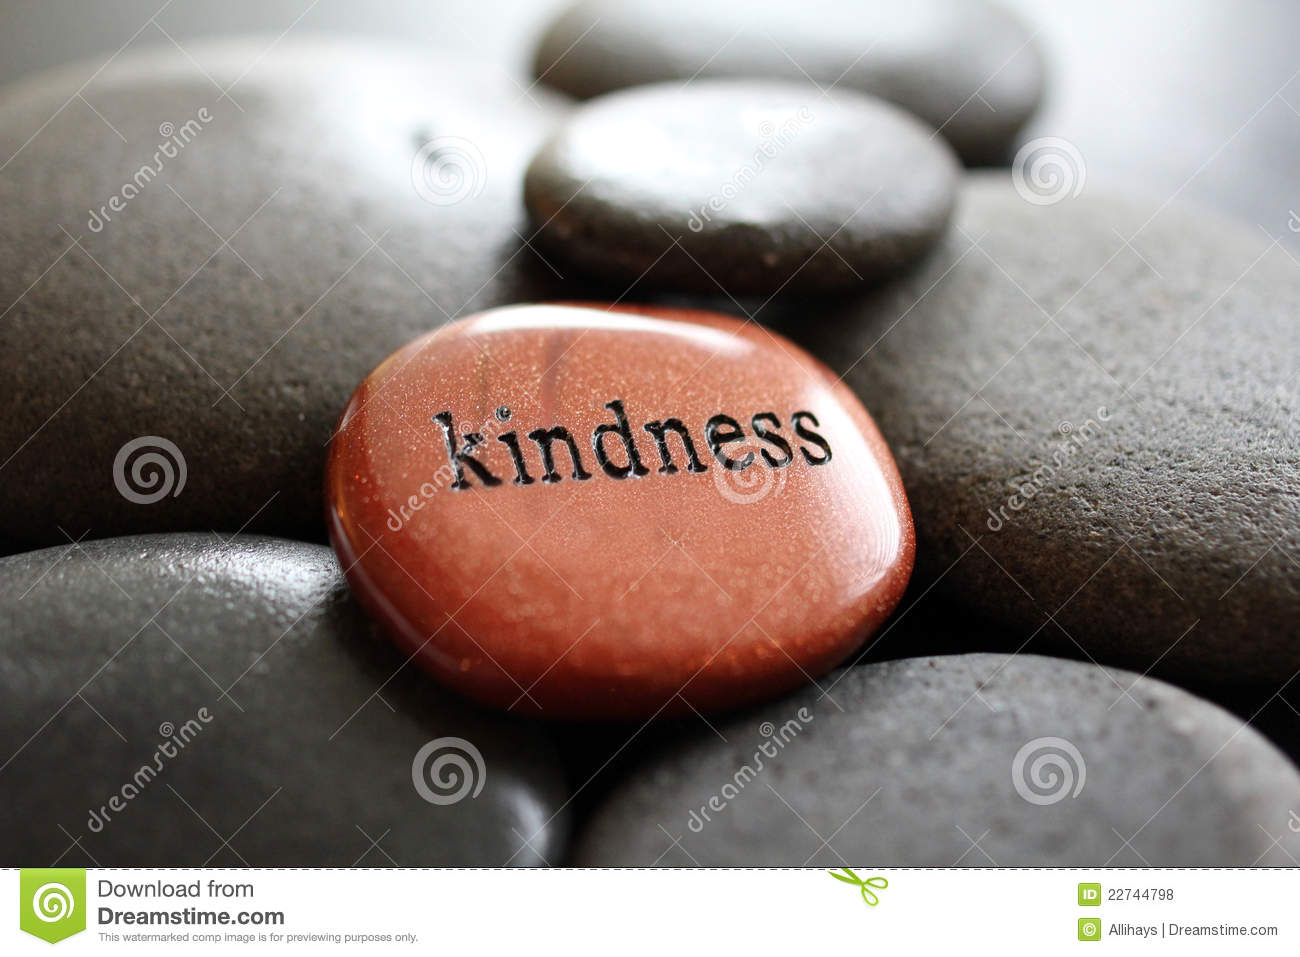 The word Kindness carved in goldstone resting on river rocks.